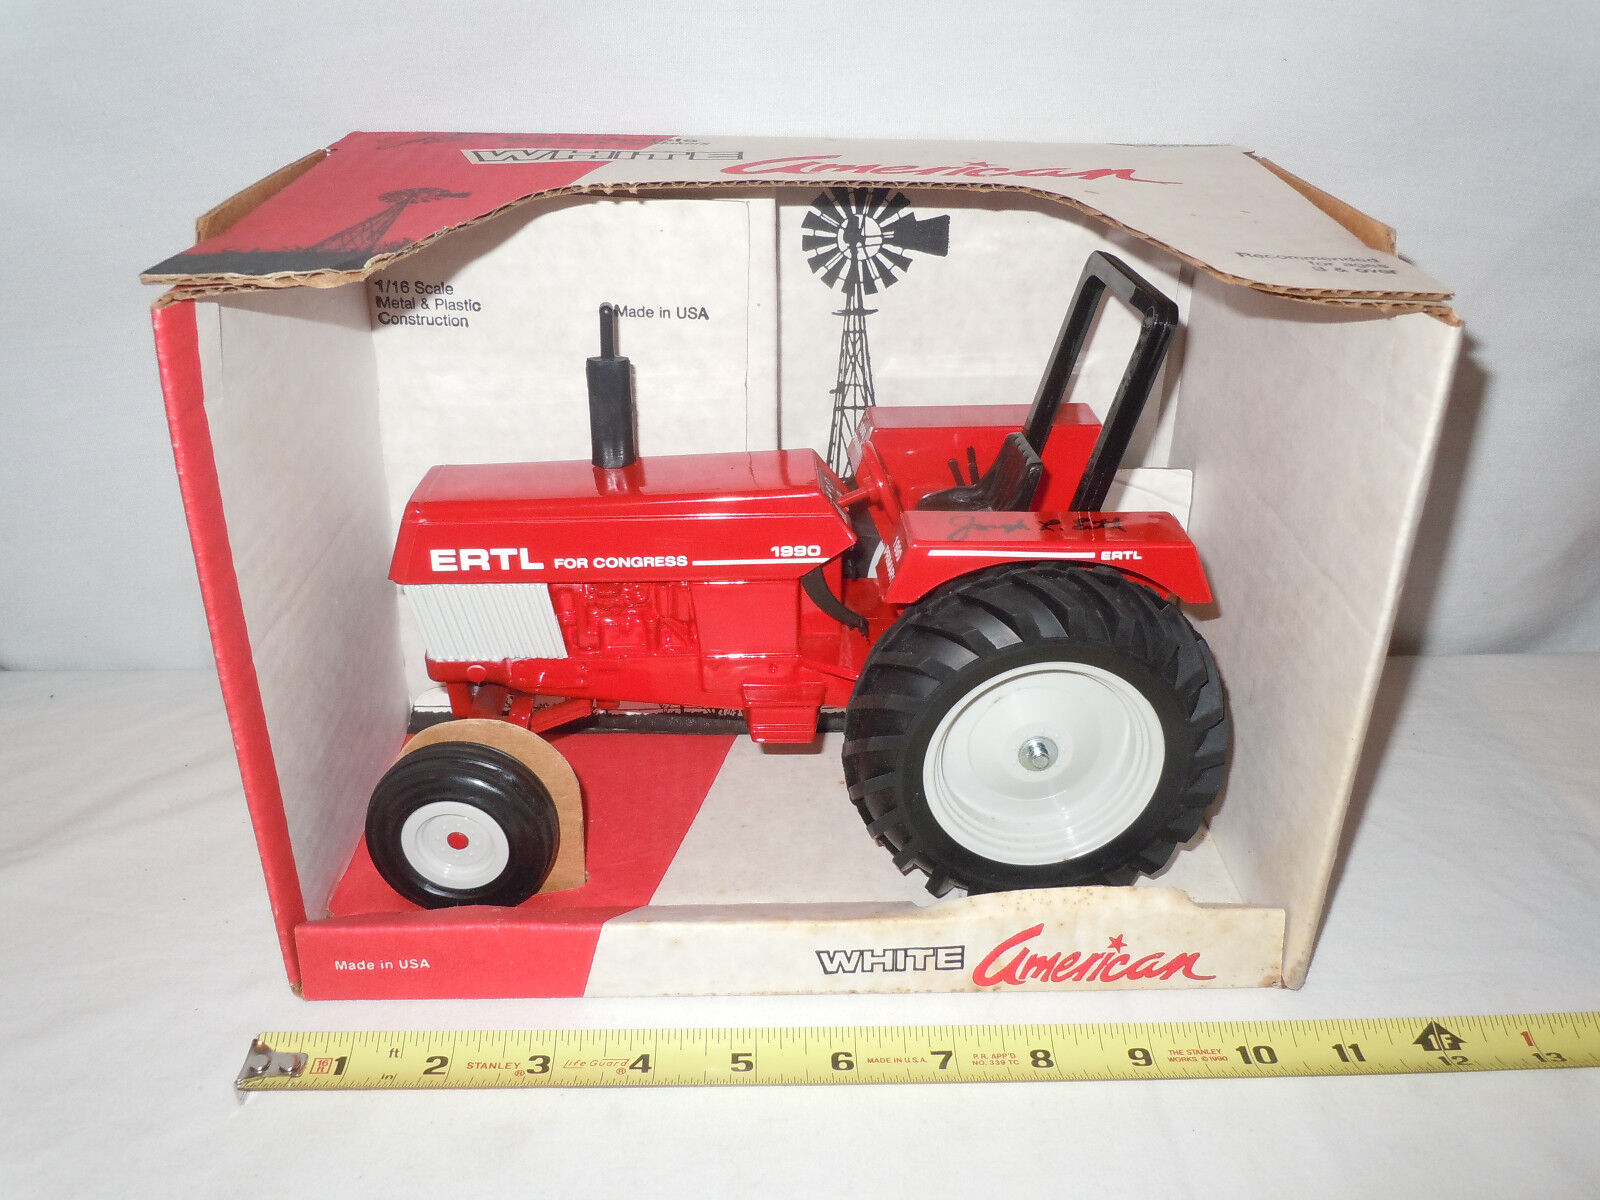 Weiß 1990 Ertl For Congress Tractor By Scale Models 1 16th Scale